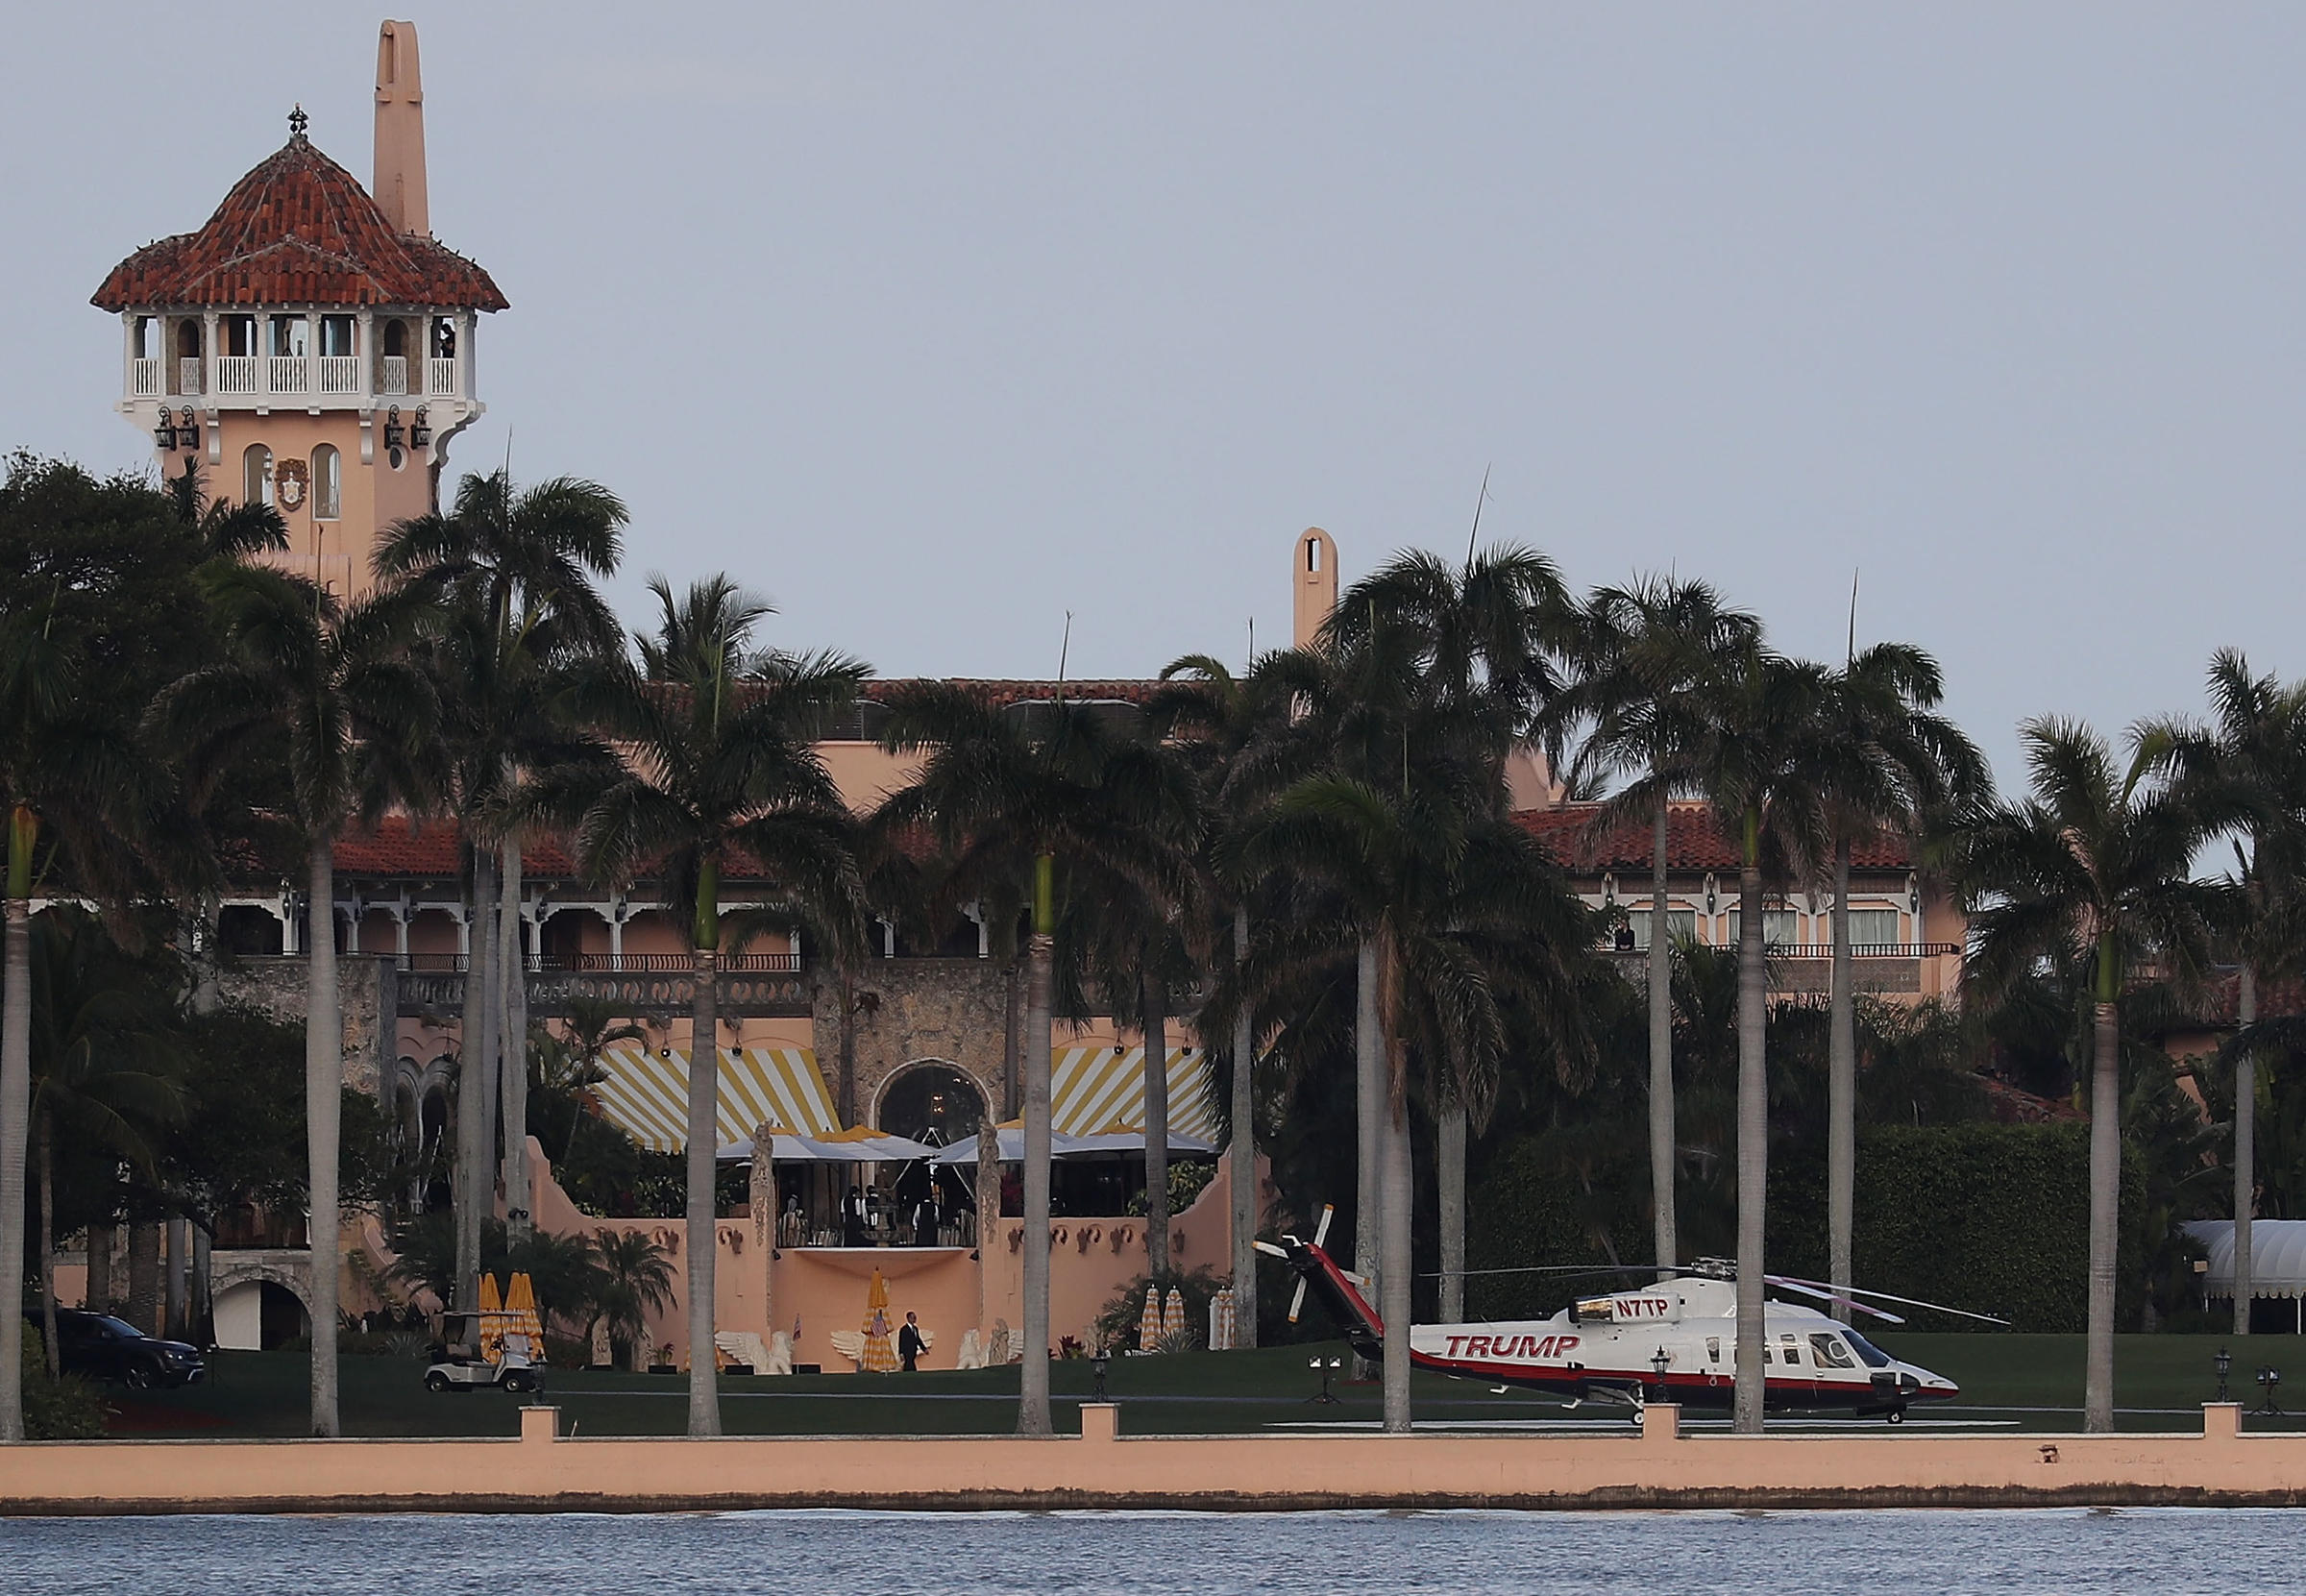 Mar-a-Lago requests Labor Department to hire 70 foreign workers